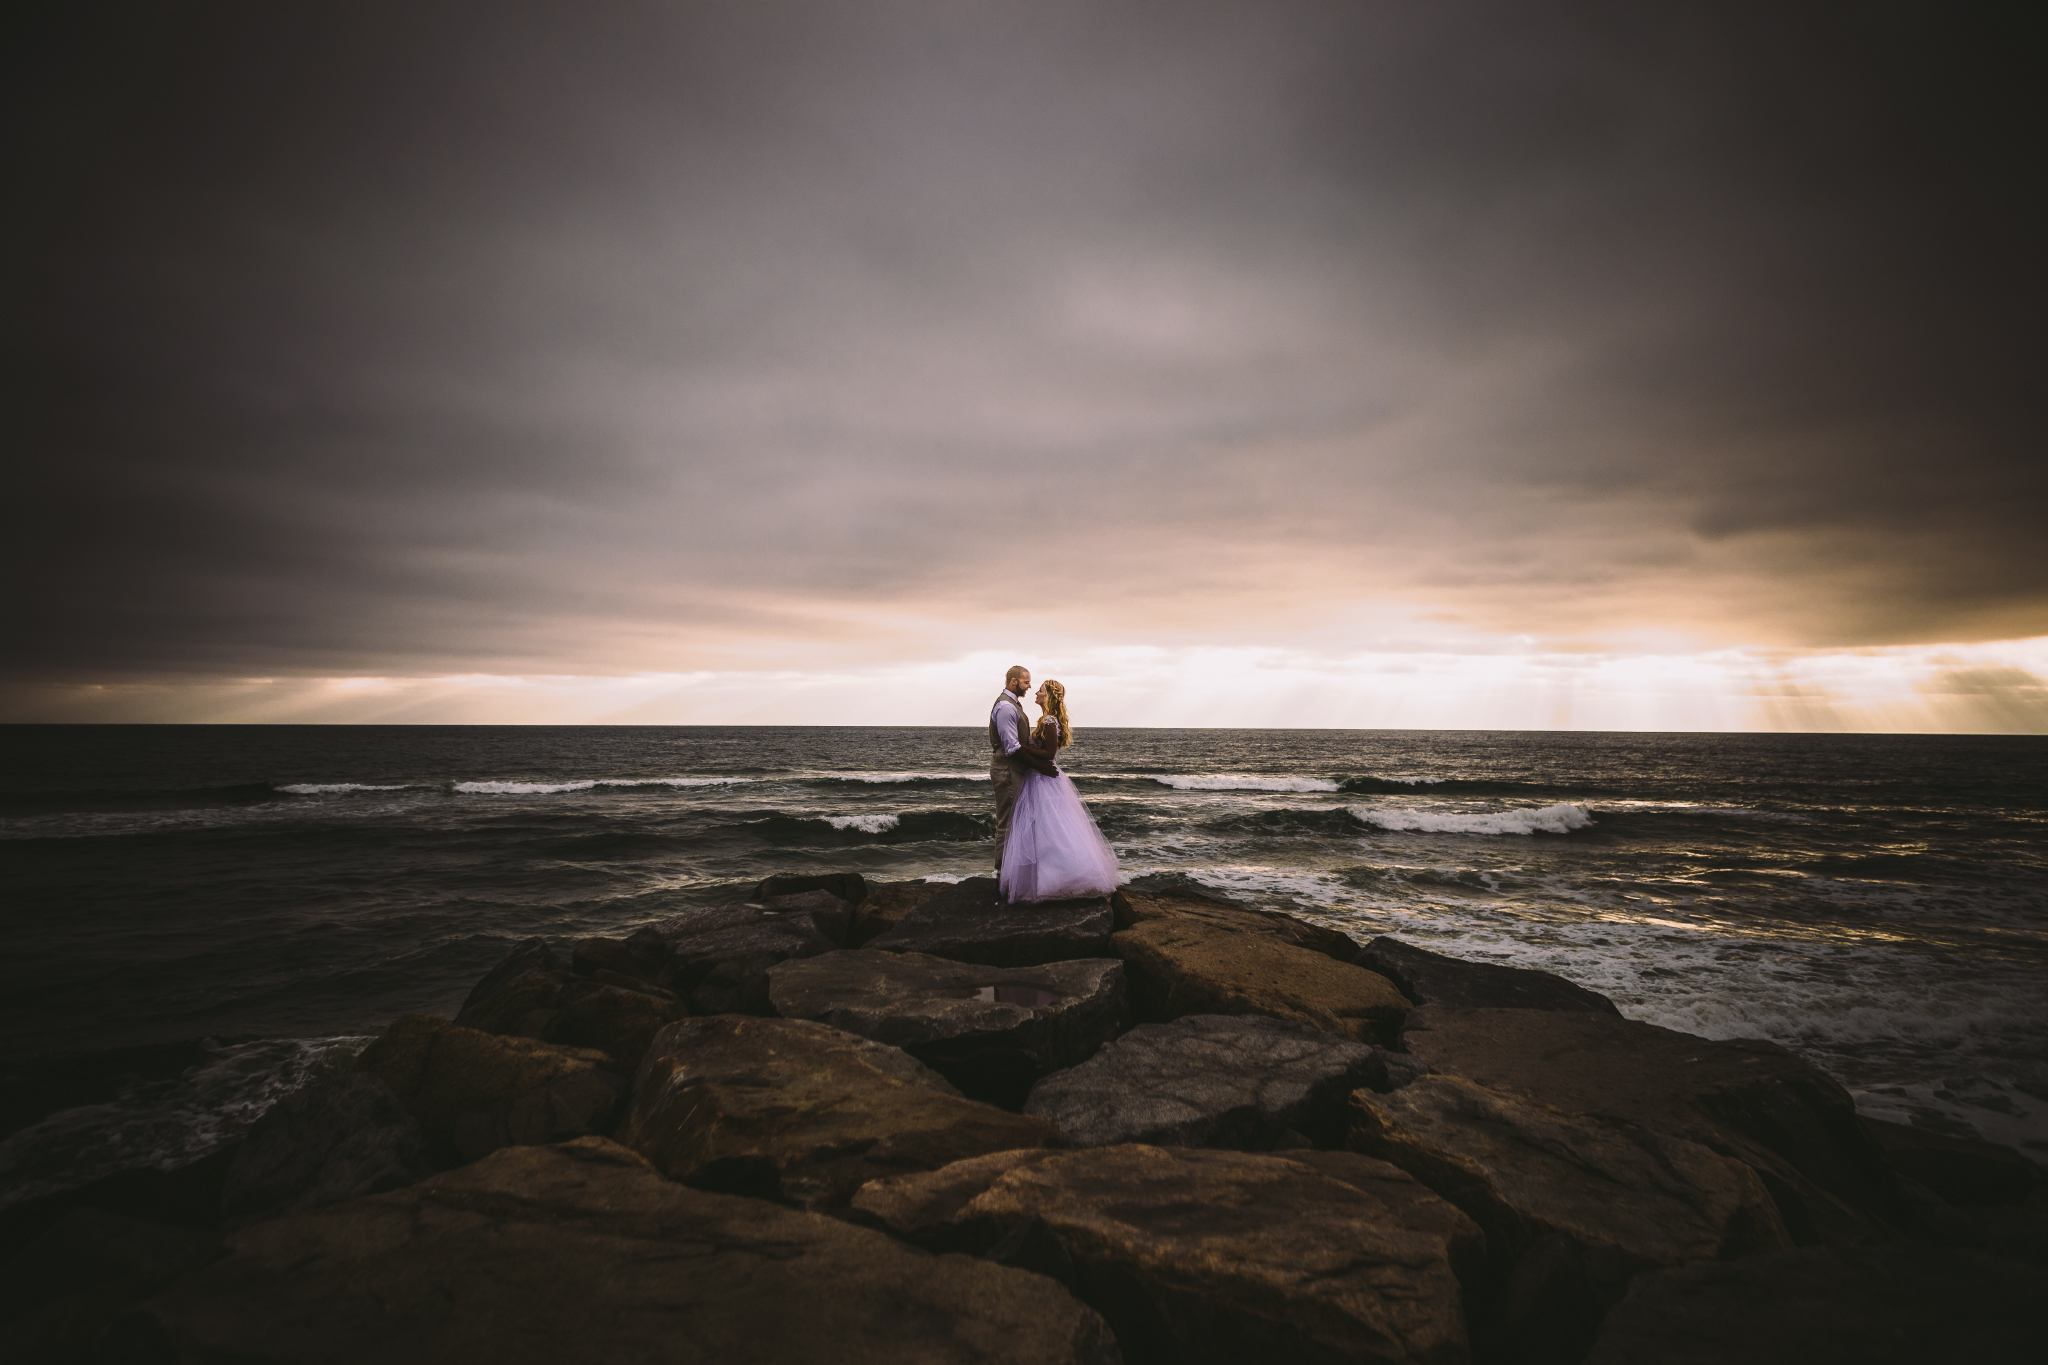 san diego wedding   photographer | married couple looking at each other while holding each other   on rocky shore with sunrays seen from afar